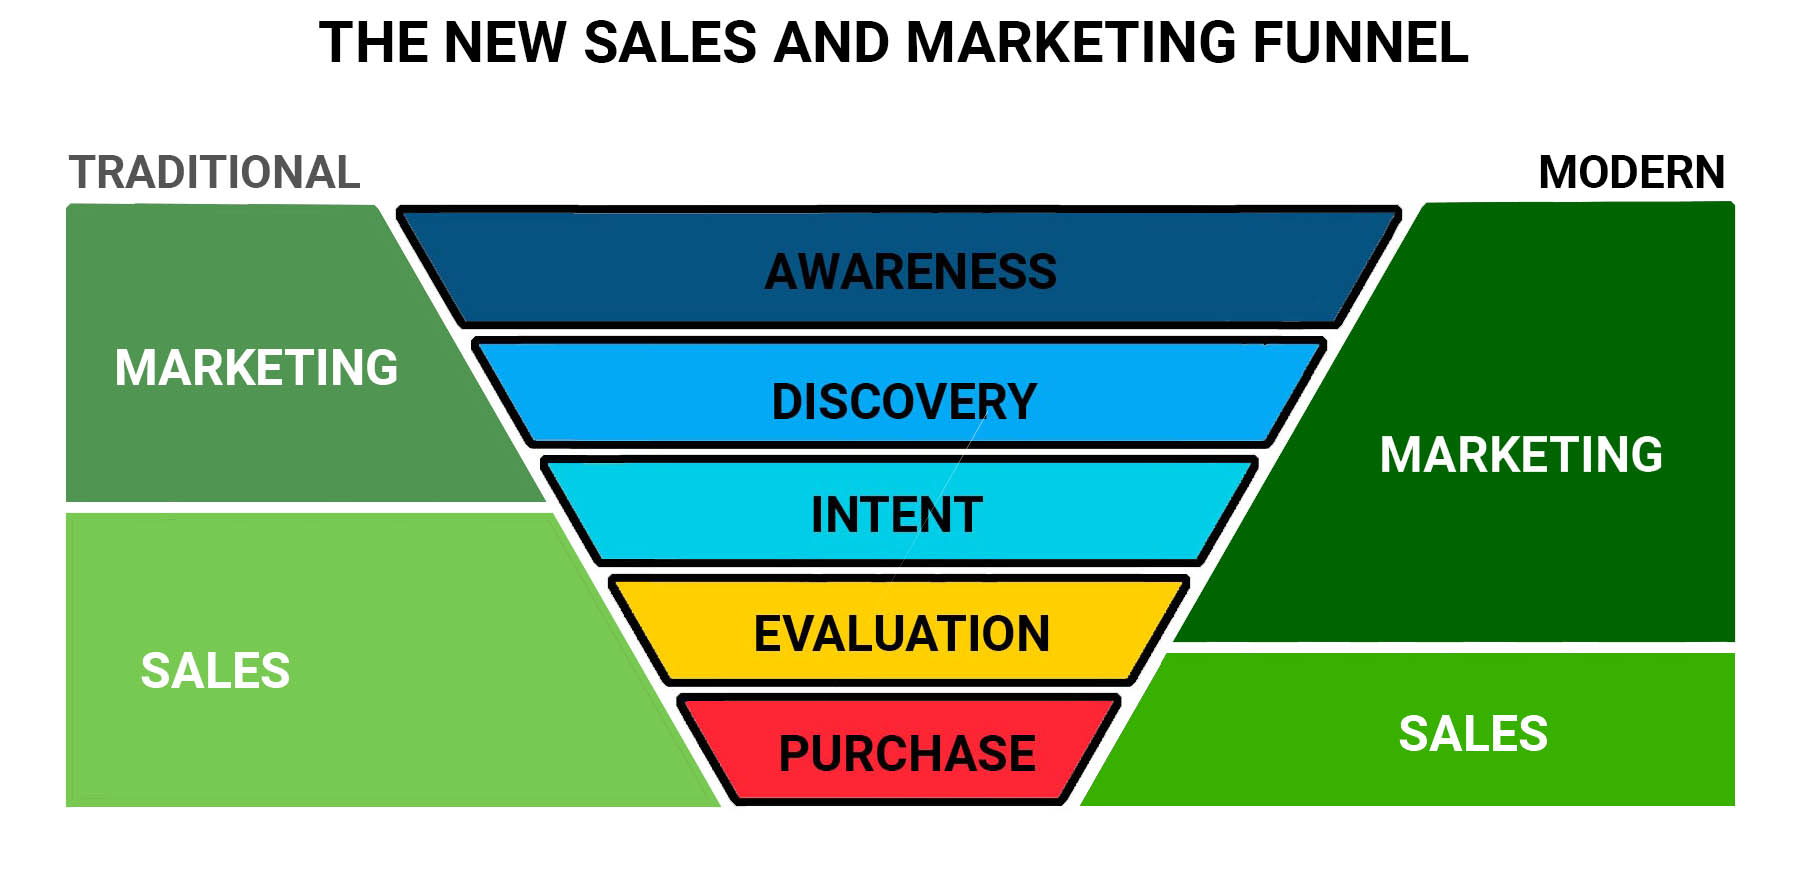 New sales and marketing funnel